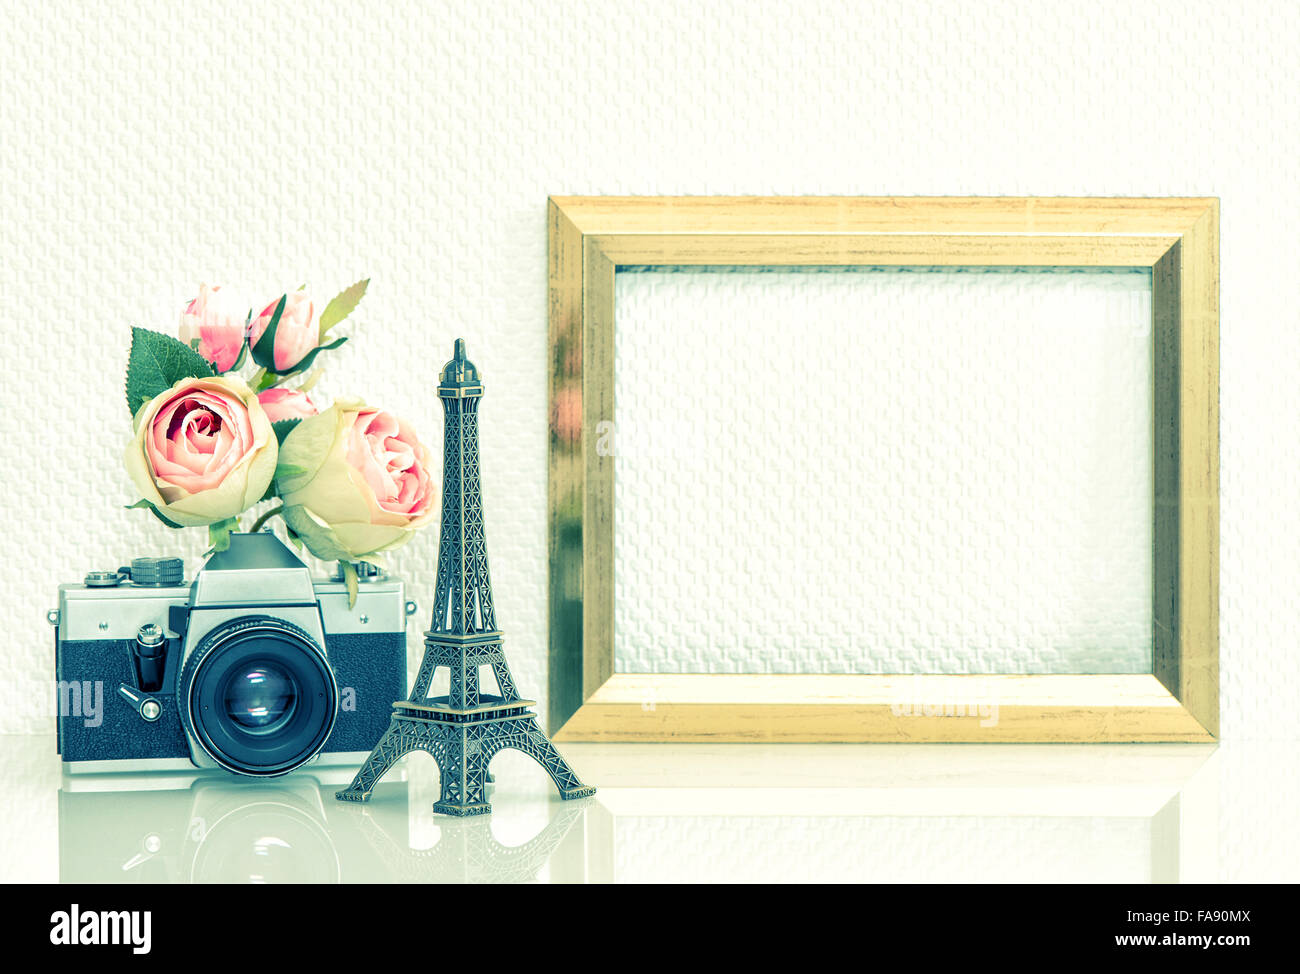 vintage travel poster paris stock photos vintage travel poster paris stock images alamy. Black Bedroom Furniture Sets. Home Design Ideas